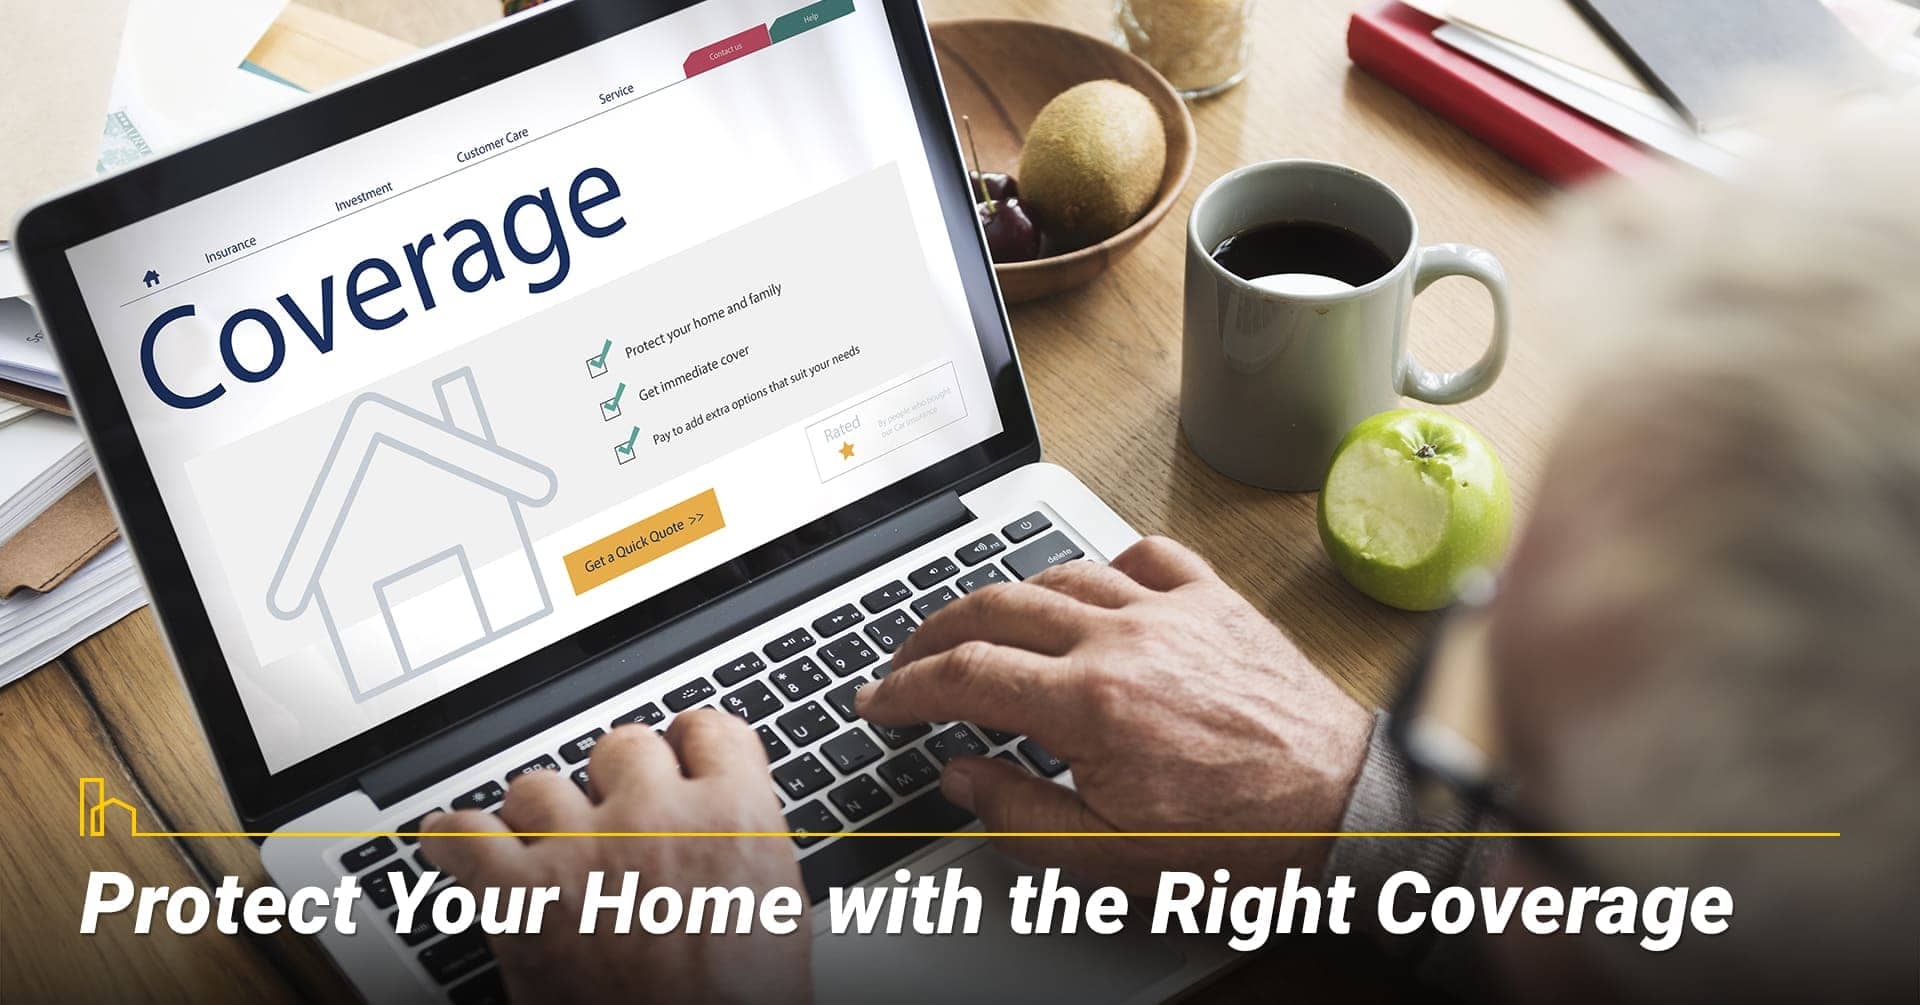 Protect Your Home with the Right Coverage, choose the right coverage for your home